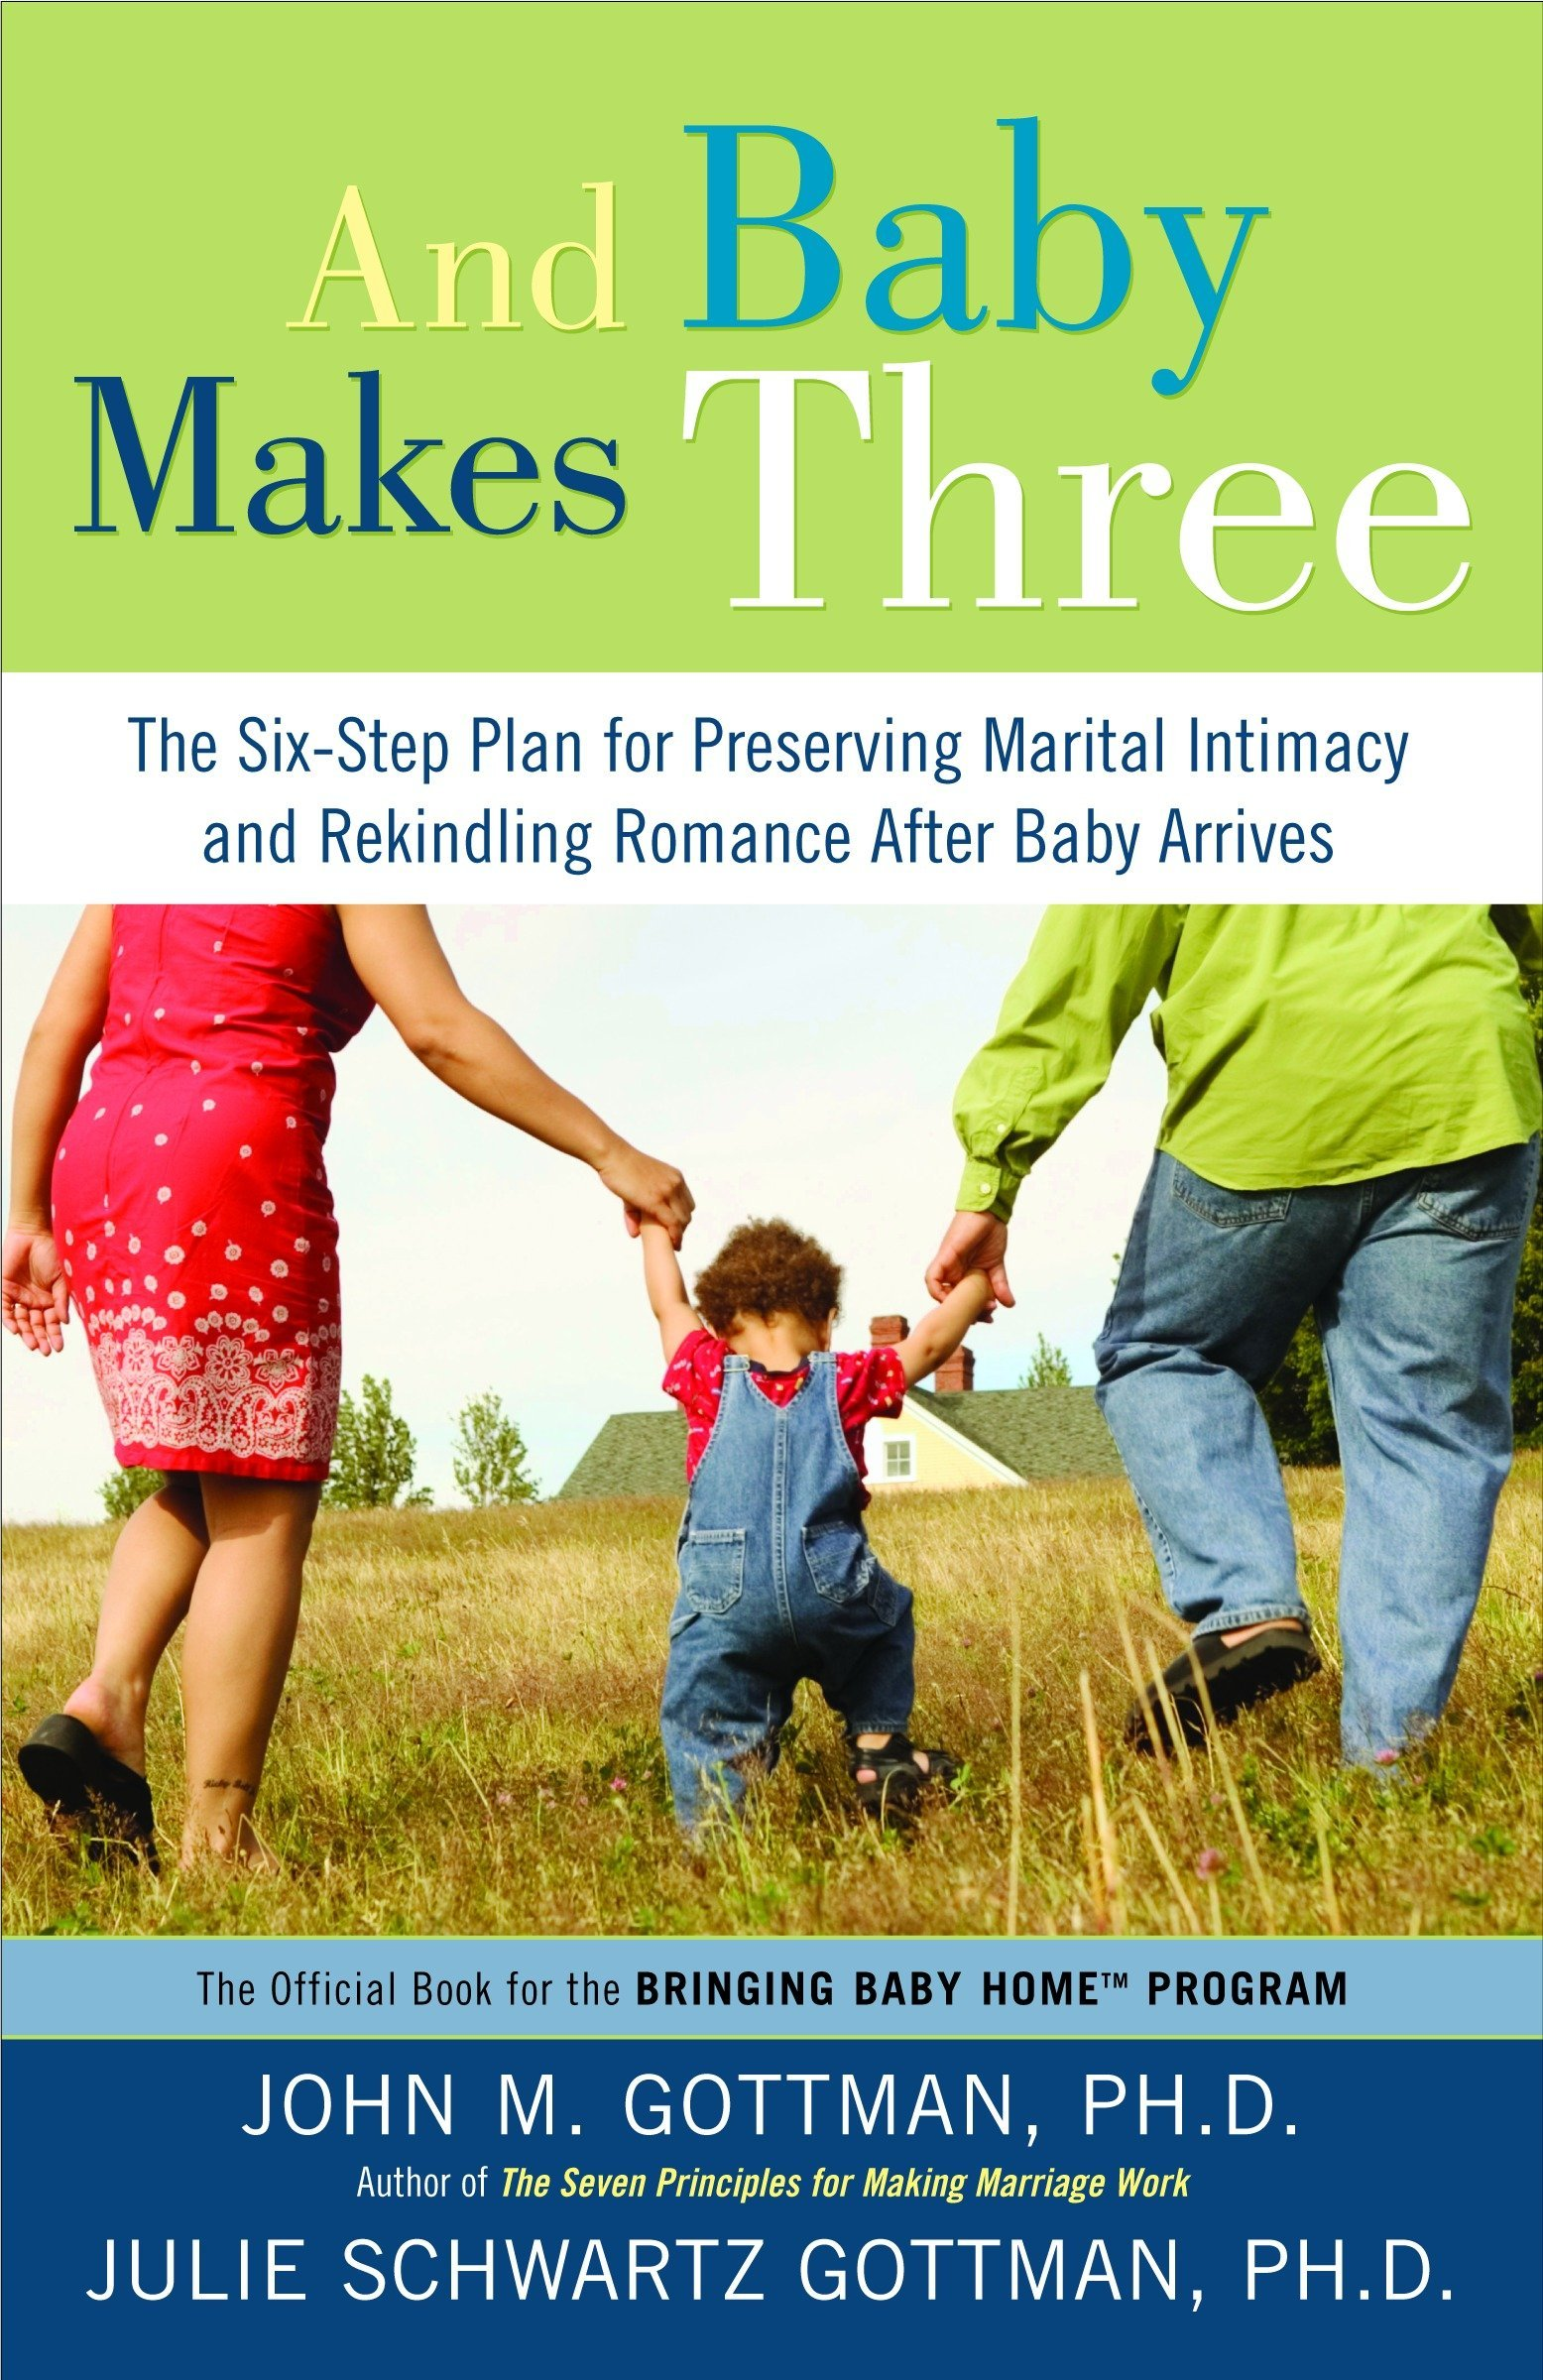 And Baby Makes Three: The Six-Step Plan for Preserving Marital